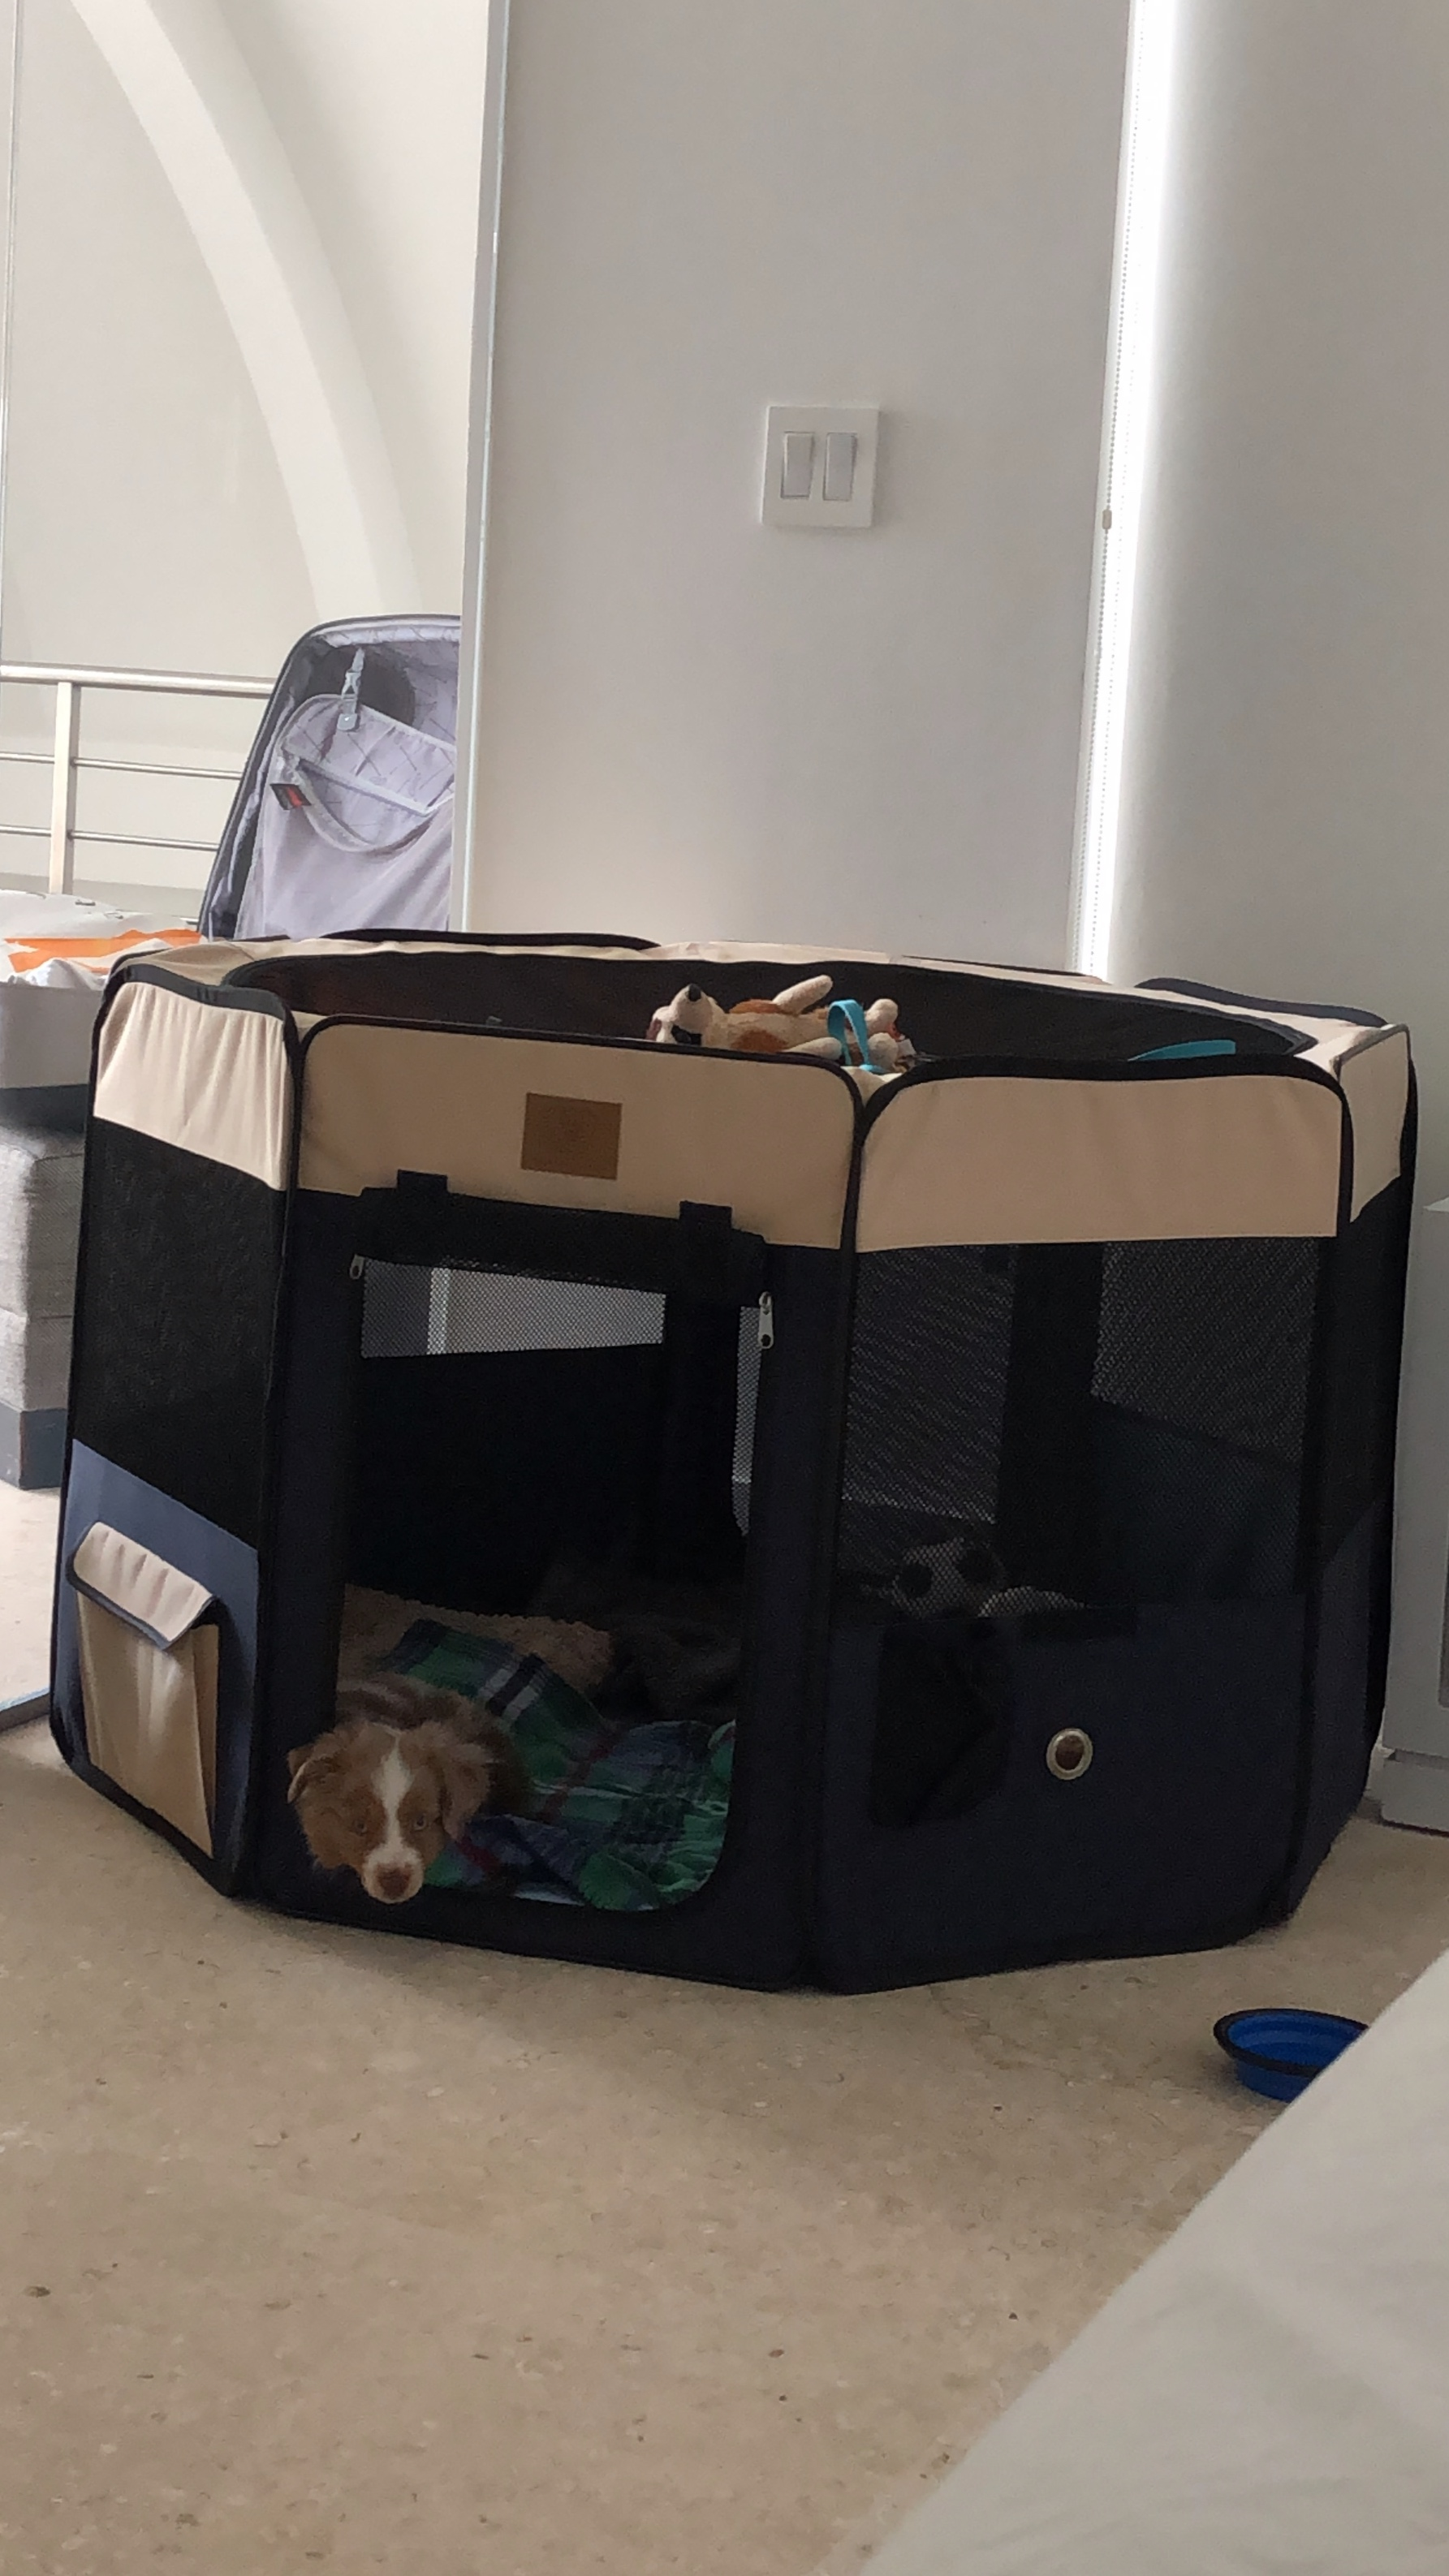 This is the playpen I bought him. We weren't successful with him in terms of separation anxiety training. But it is a good training tool when you are in the room to teach him how to be OK playing on his own. Click on the image to find it at Amazon.